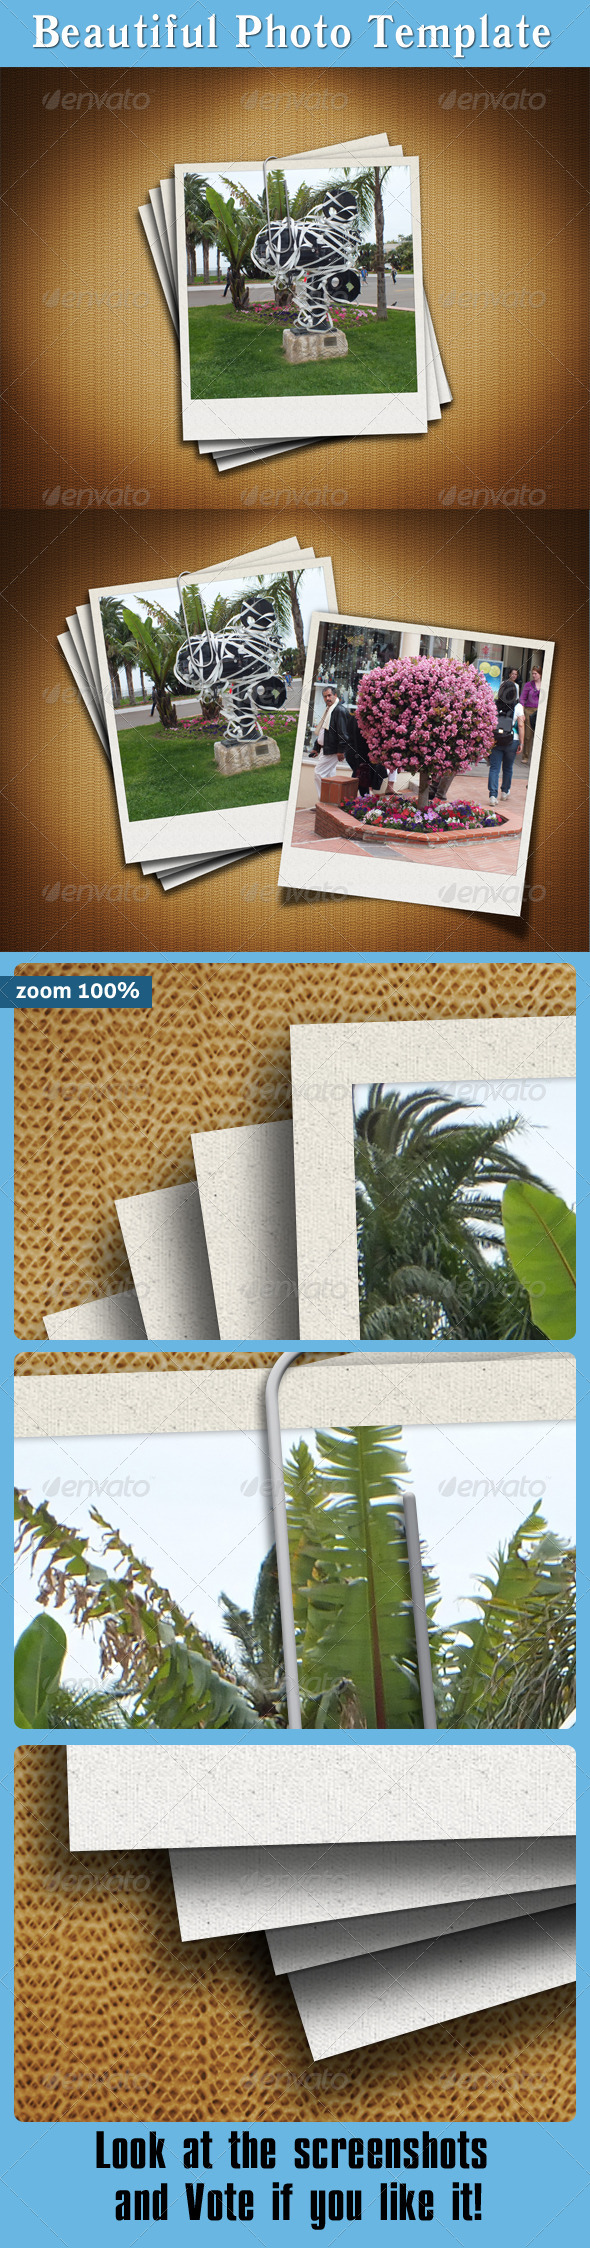 Beautiful Photo Template - Miscellaneous Photo Templates